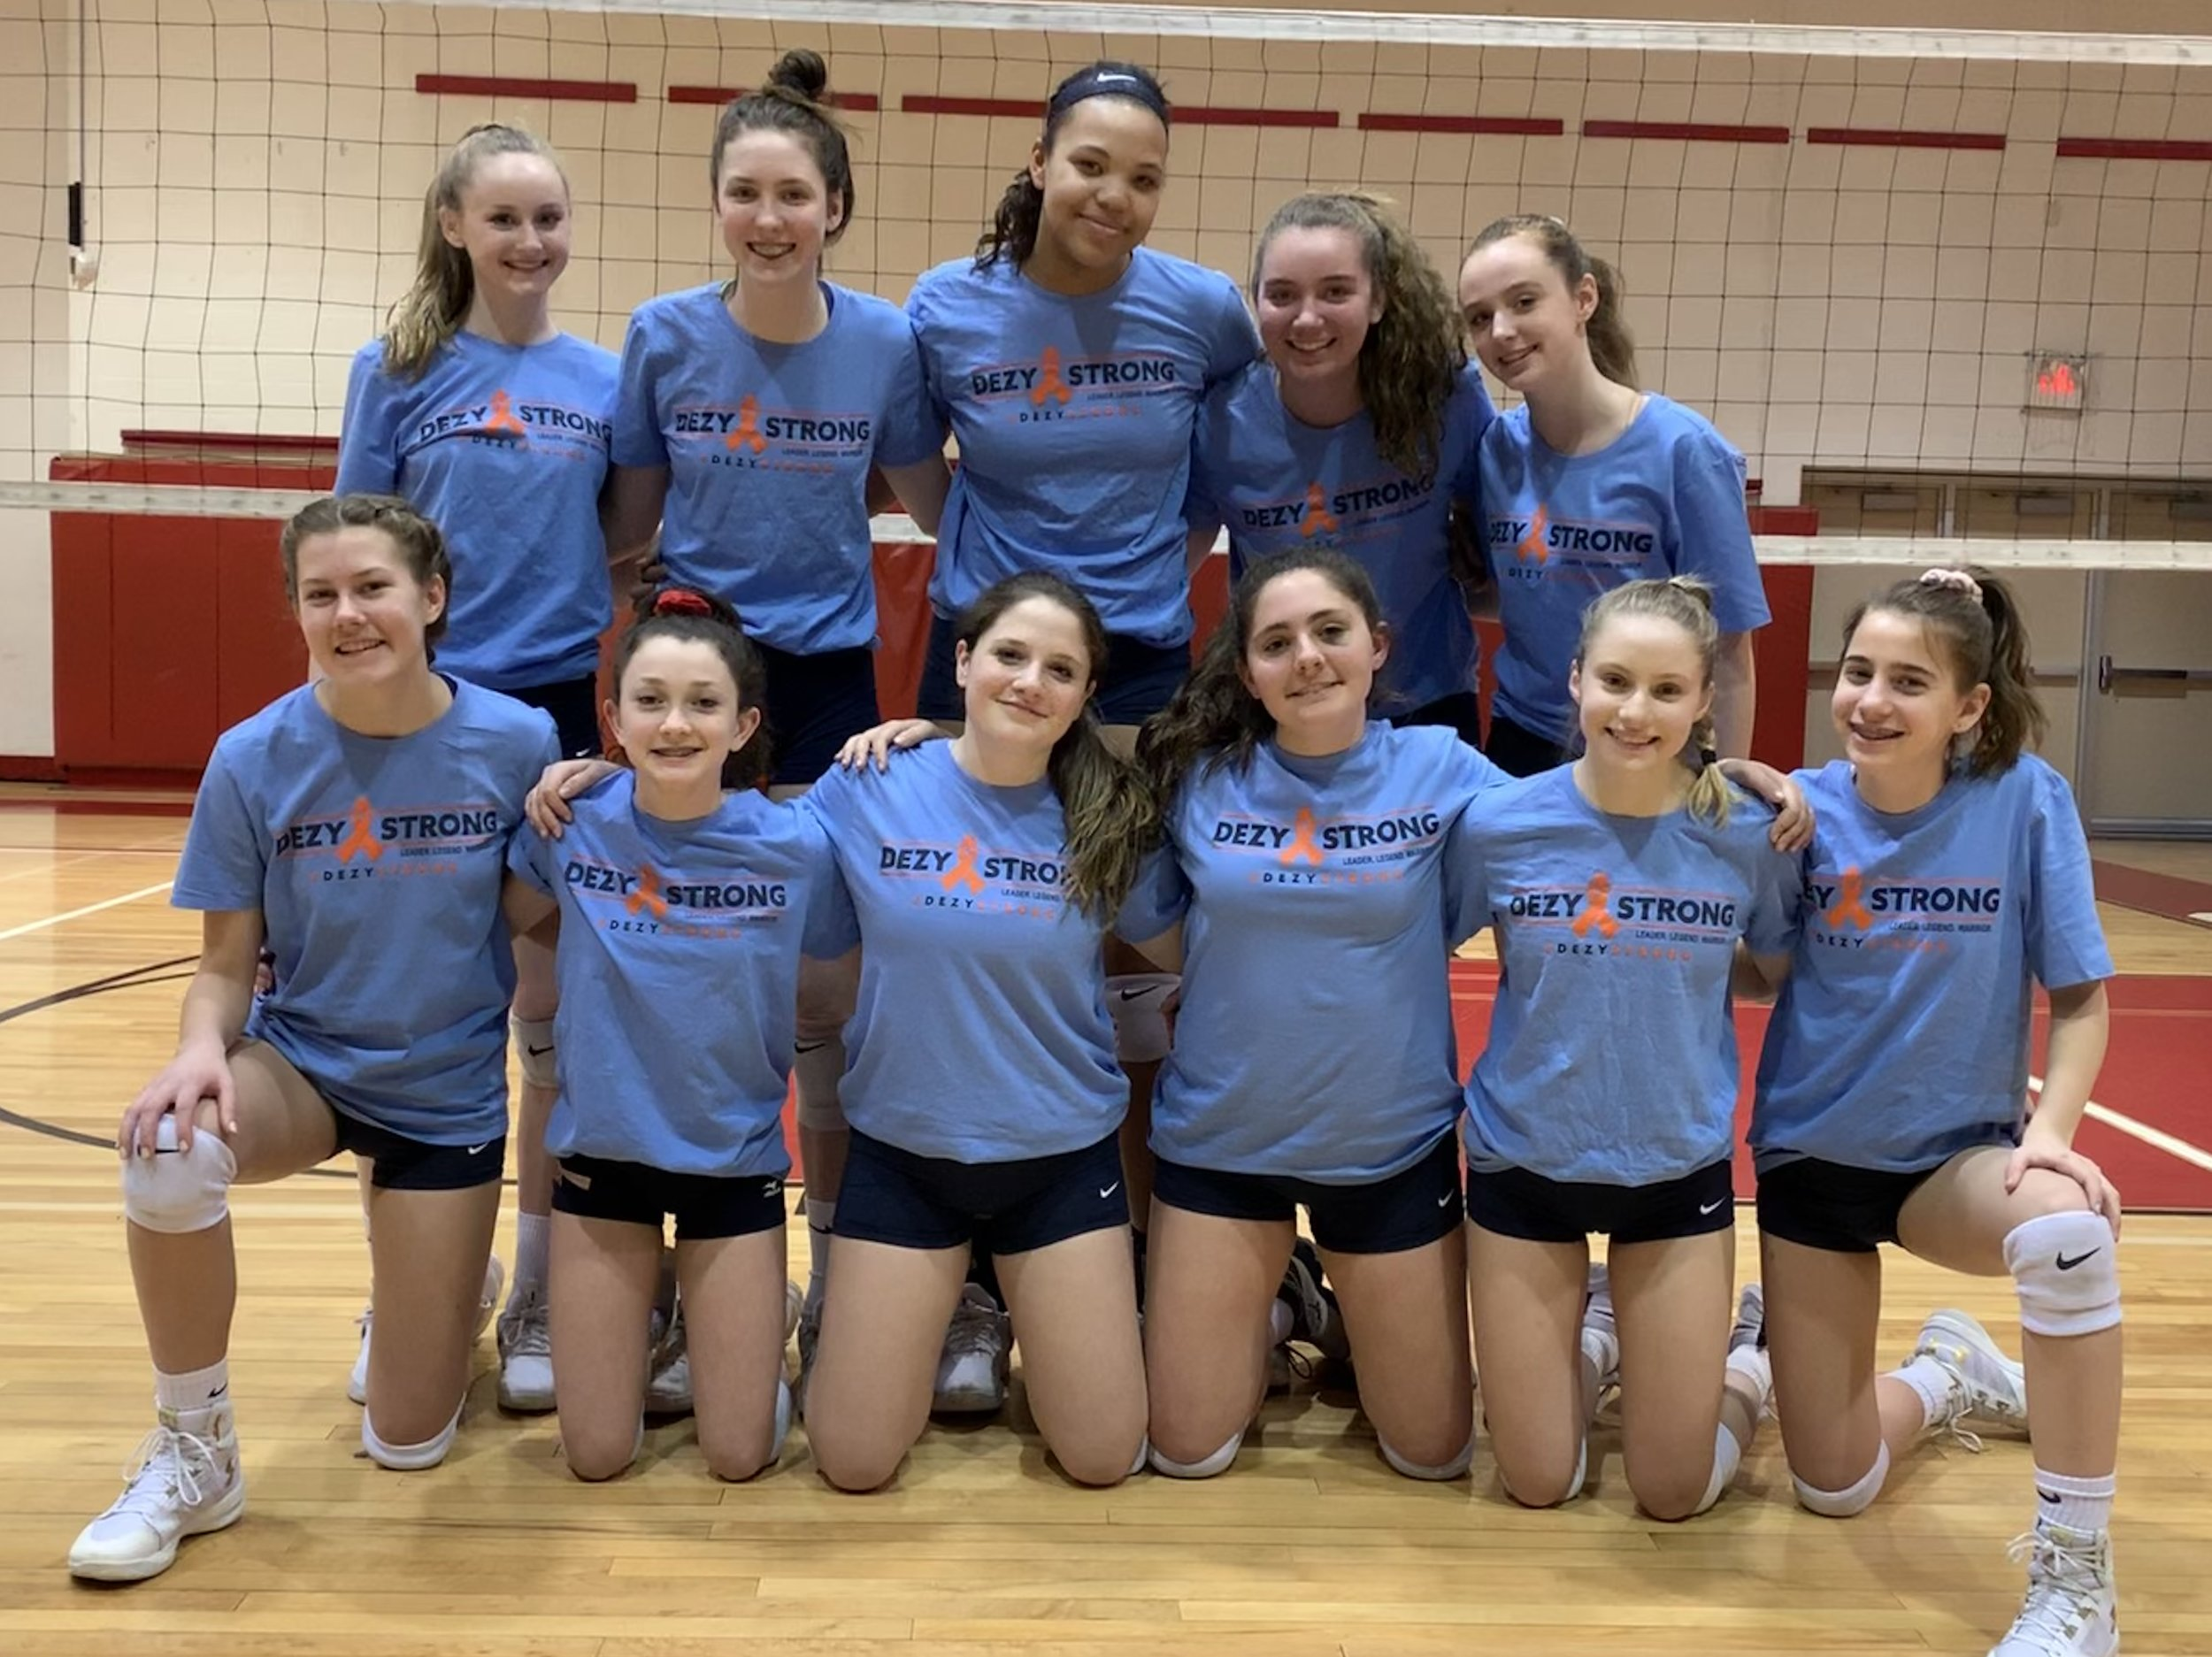 Girls 14 Red - USA Volleyball National Championships, Indianapolis, IN